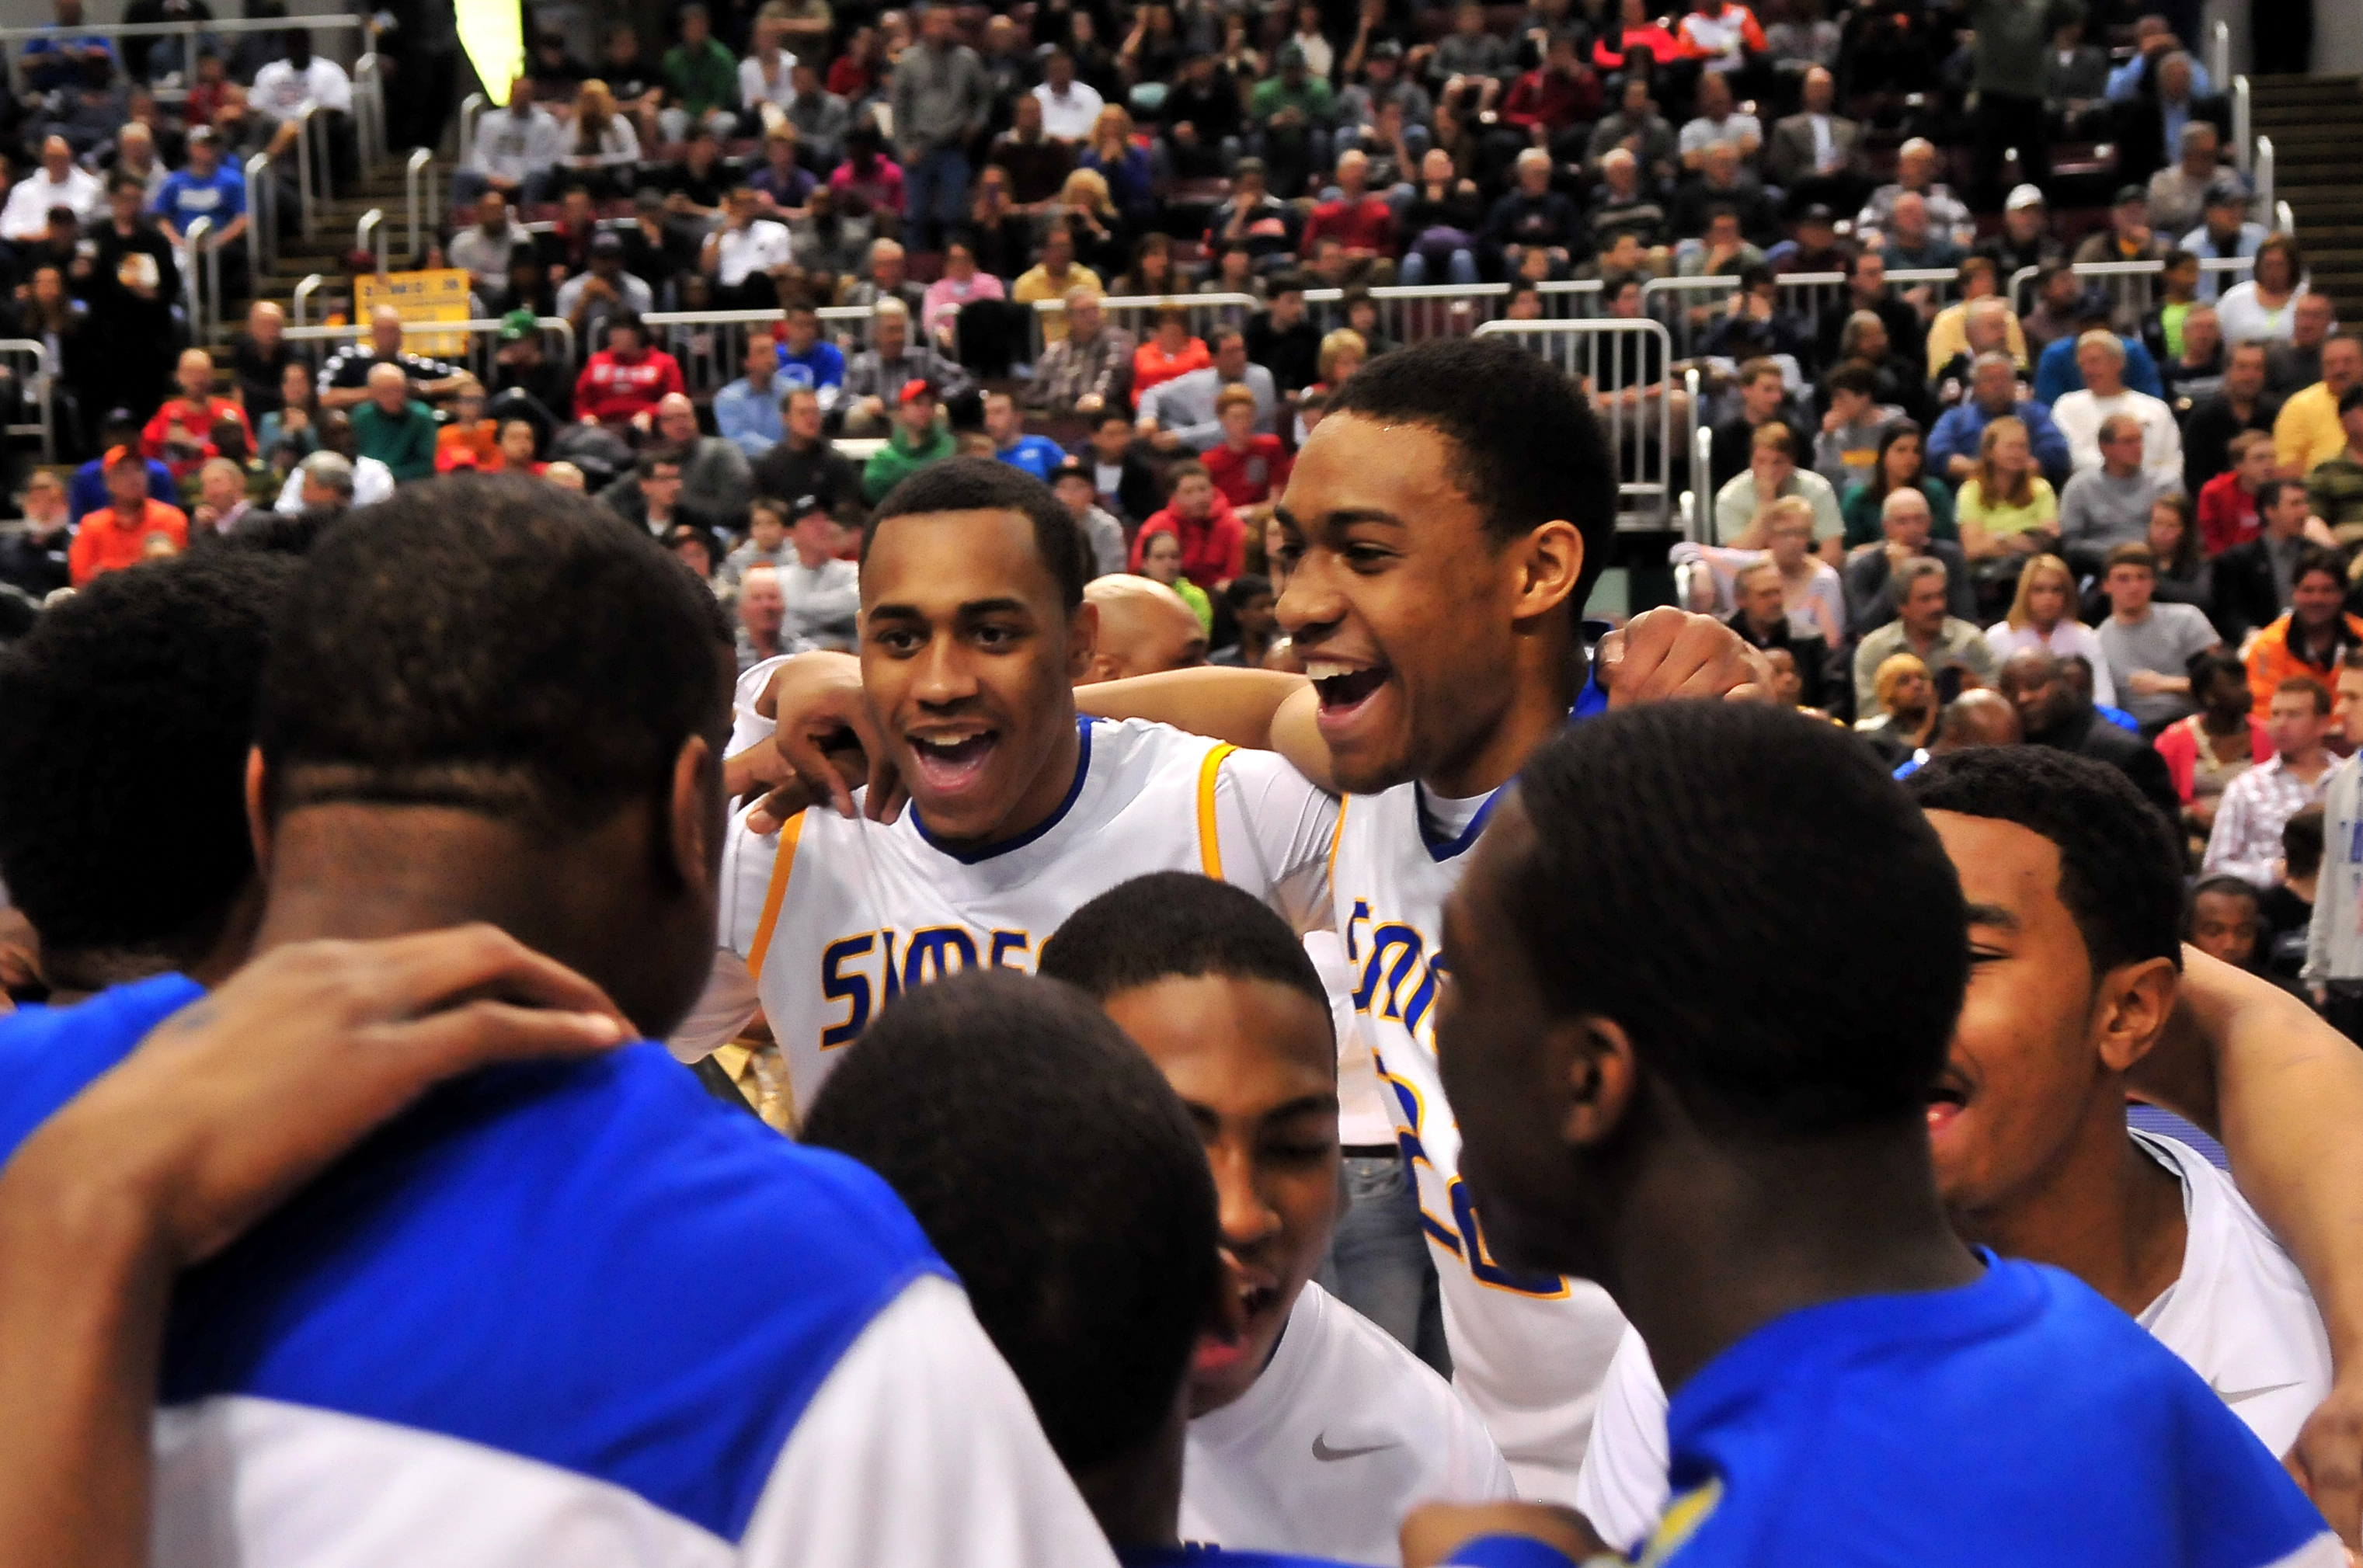 Simeon's Russell Woods (left) and Jabari Parker (right) smile as they get ready to take on Stevenson in the Class 4A state championship game.